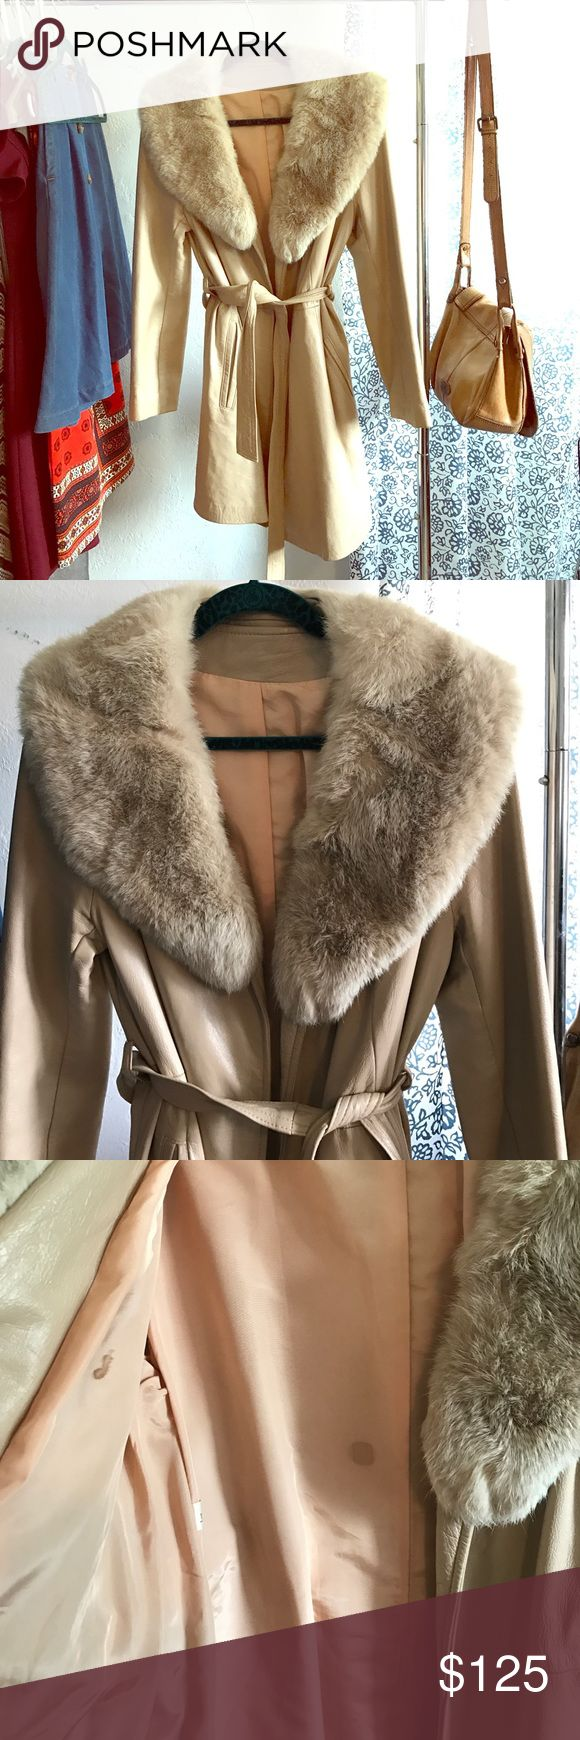 """Vintage 1960s Leather & Rabbit Fur Coat For sale is a vintage glam 1960s leather & rabbit fur jacket.  Brand: Unmarked Size: Unmarked Material: Leather and Rabbit Fur Measurements: --- Bust: 38"""" --- Waist: 35"""" --- Hip: 40"""" --- Shoulder: 20"""" --- Sleeve Length: 23"""" --- High-Point Shoulder to Hem: 34"""" Era: 1960s Pockets: Yes Shoulder Pads: No Condition: Very good, just a few marks on the lining (pictured) Jackets & Coats"""